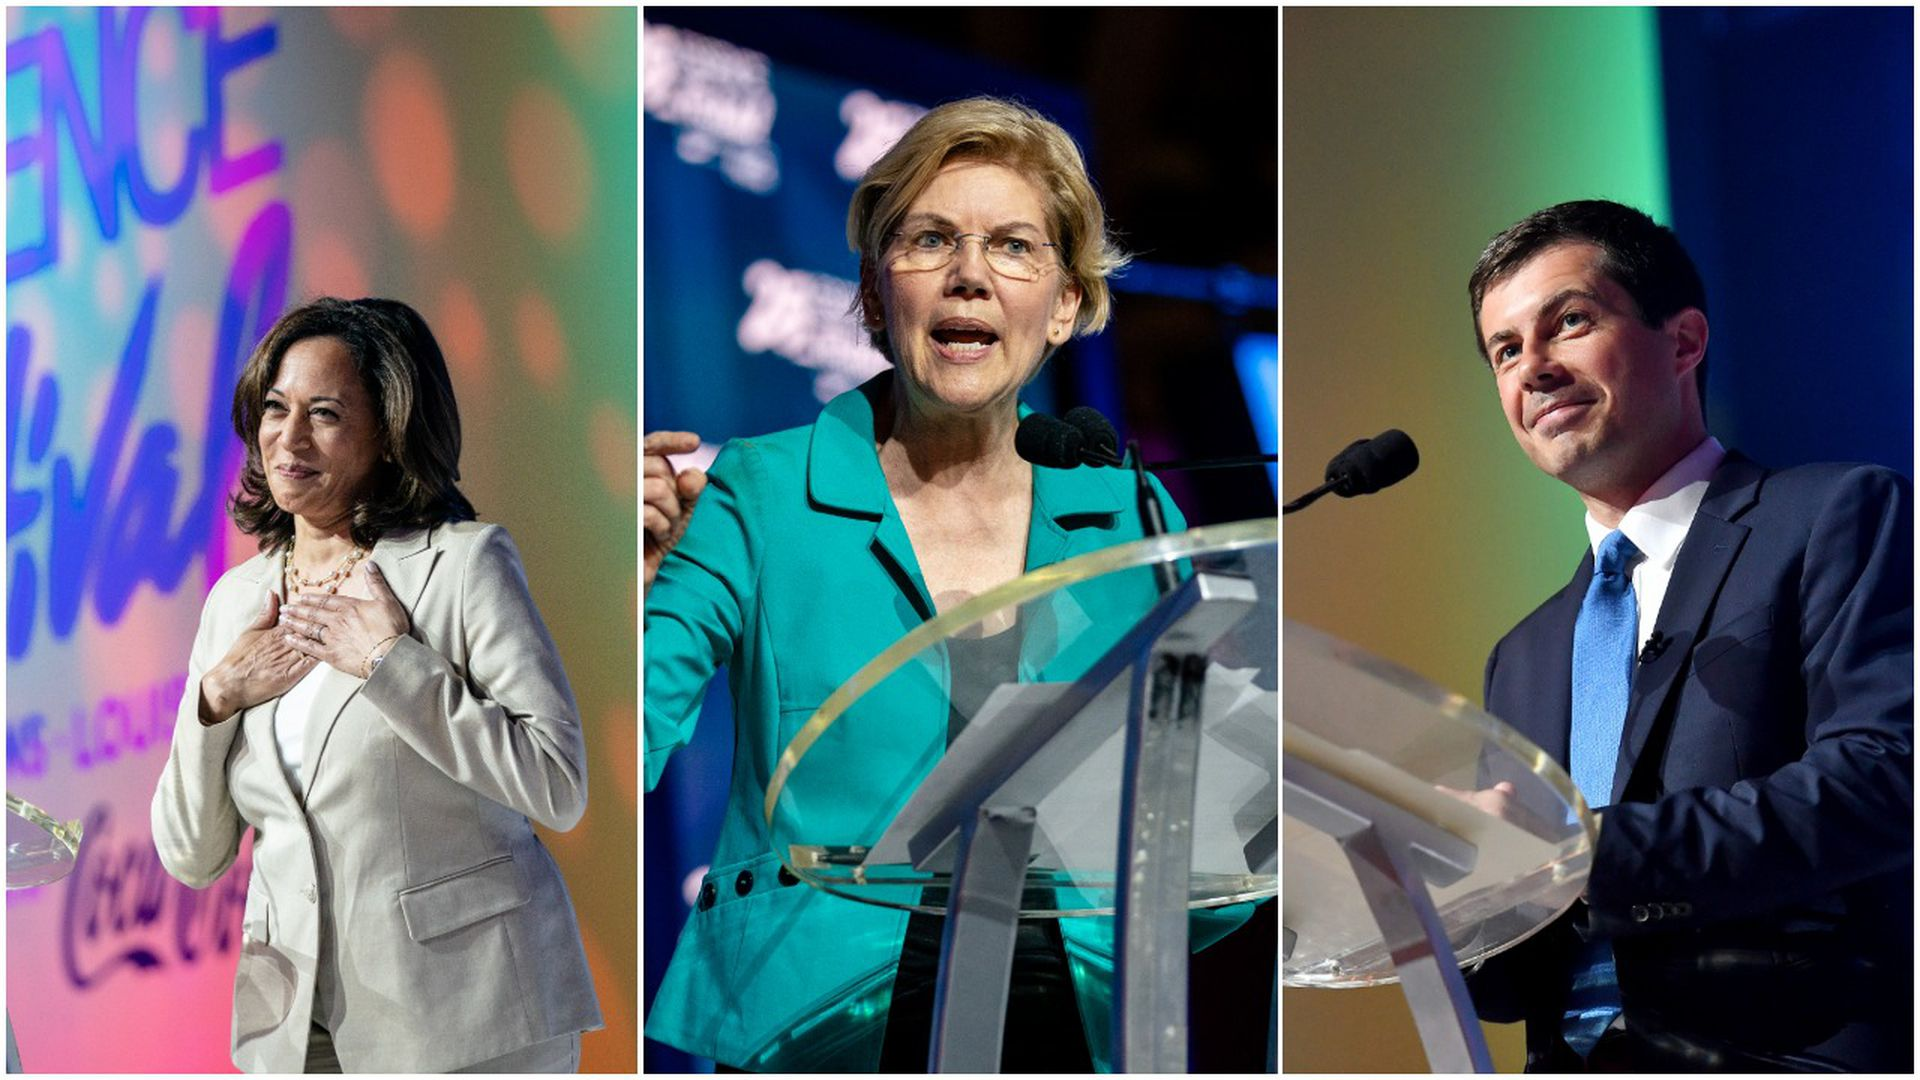 The 5 leaders of the Democratic presidential pack